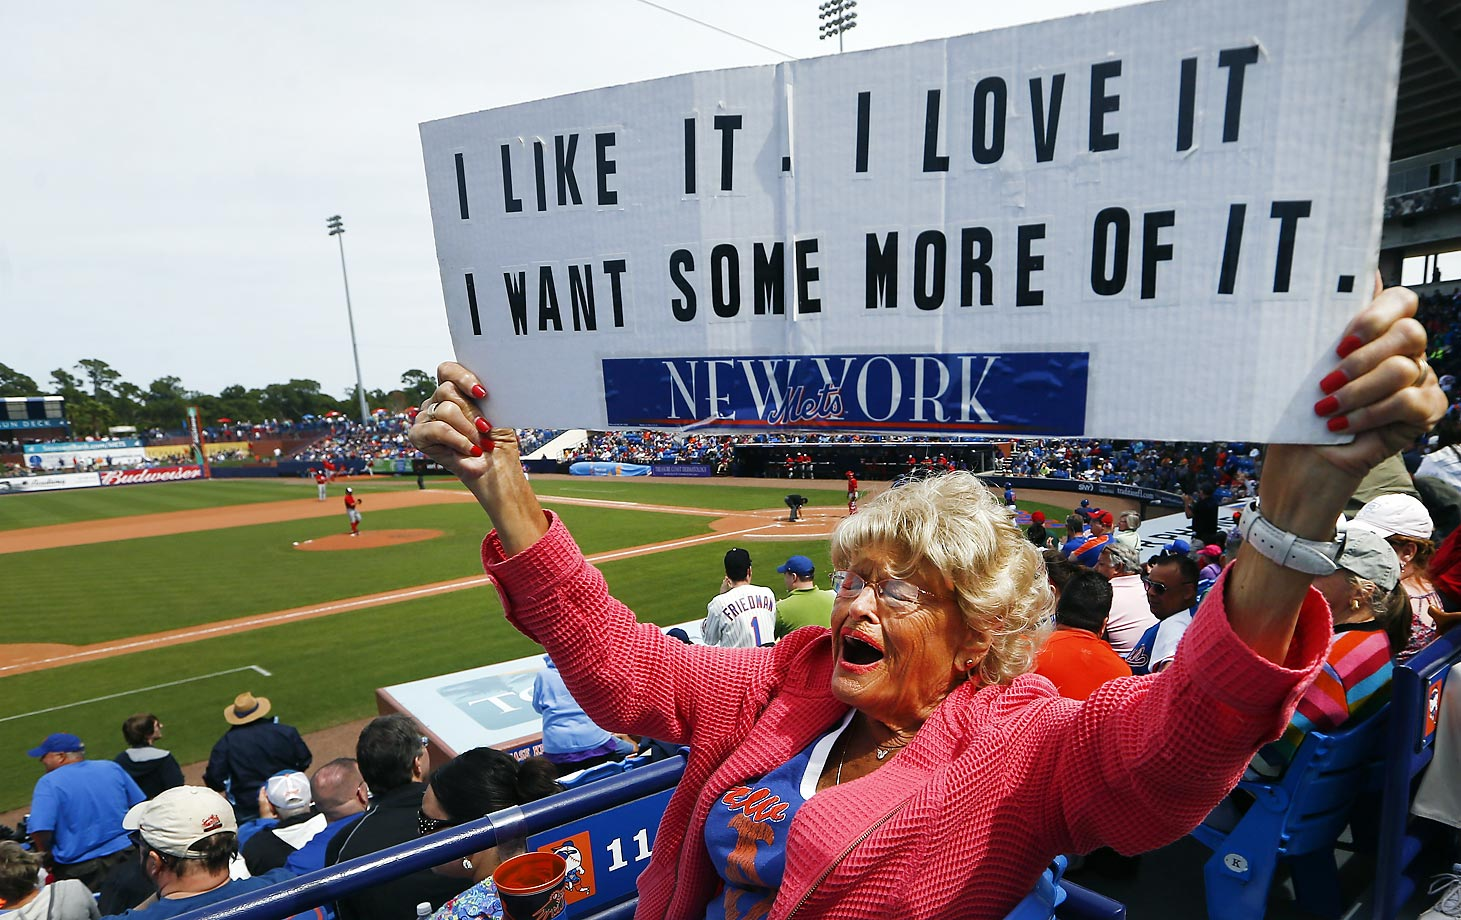 New York Mets fan Grace Velez, of Fort Pierce, Fla., expresses herself through sign following a Spring Training home run in Port St. Lucie, Florida.